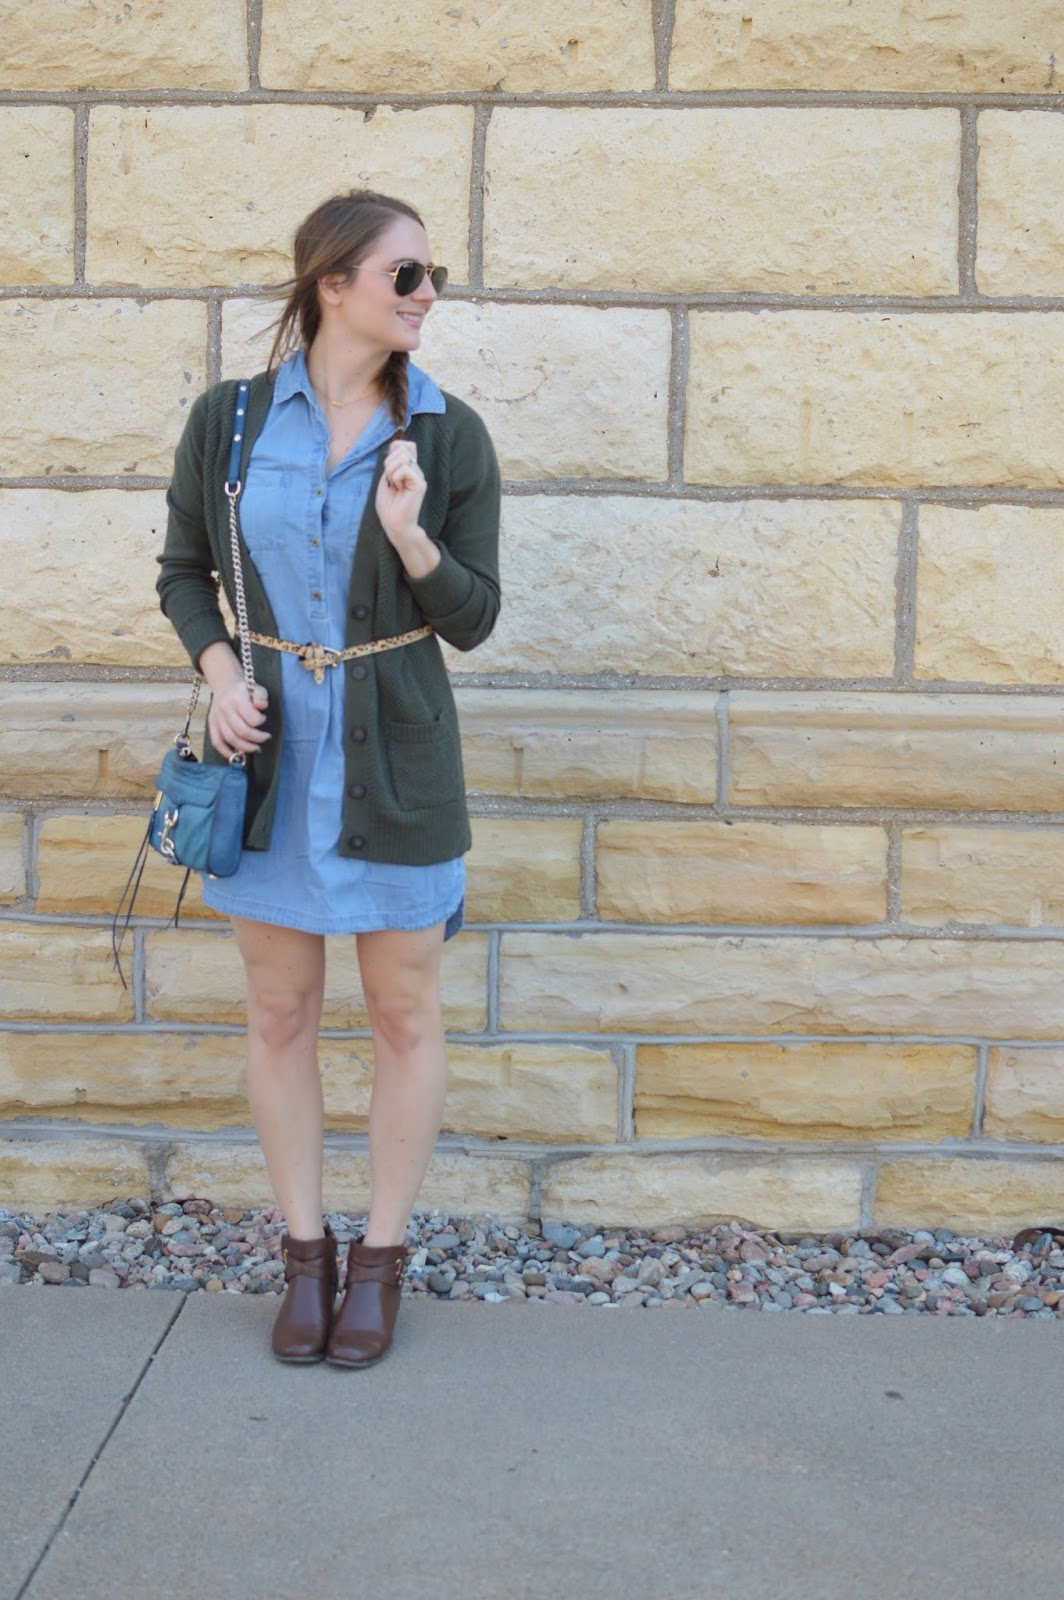 green sweater belted over chambray dress | fall outfit ideas | what to wear this fall